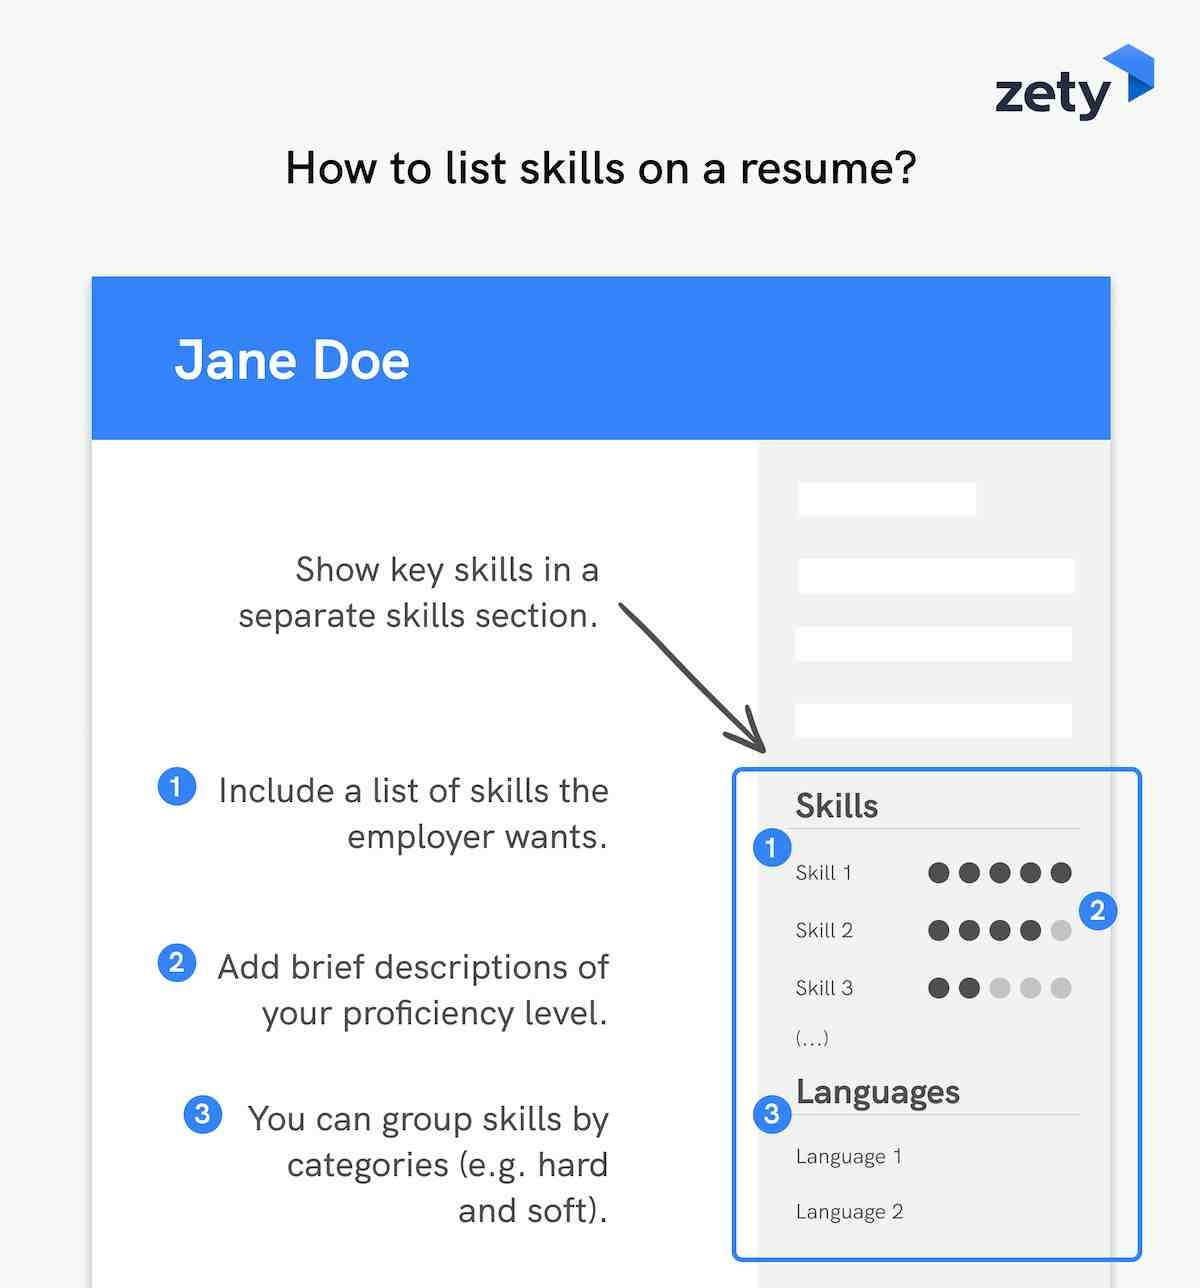 How to list skills on a resume: visual example